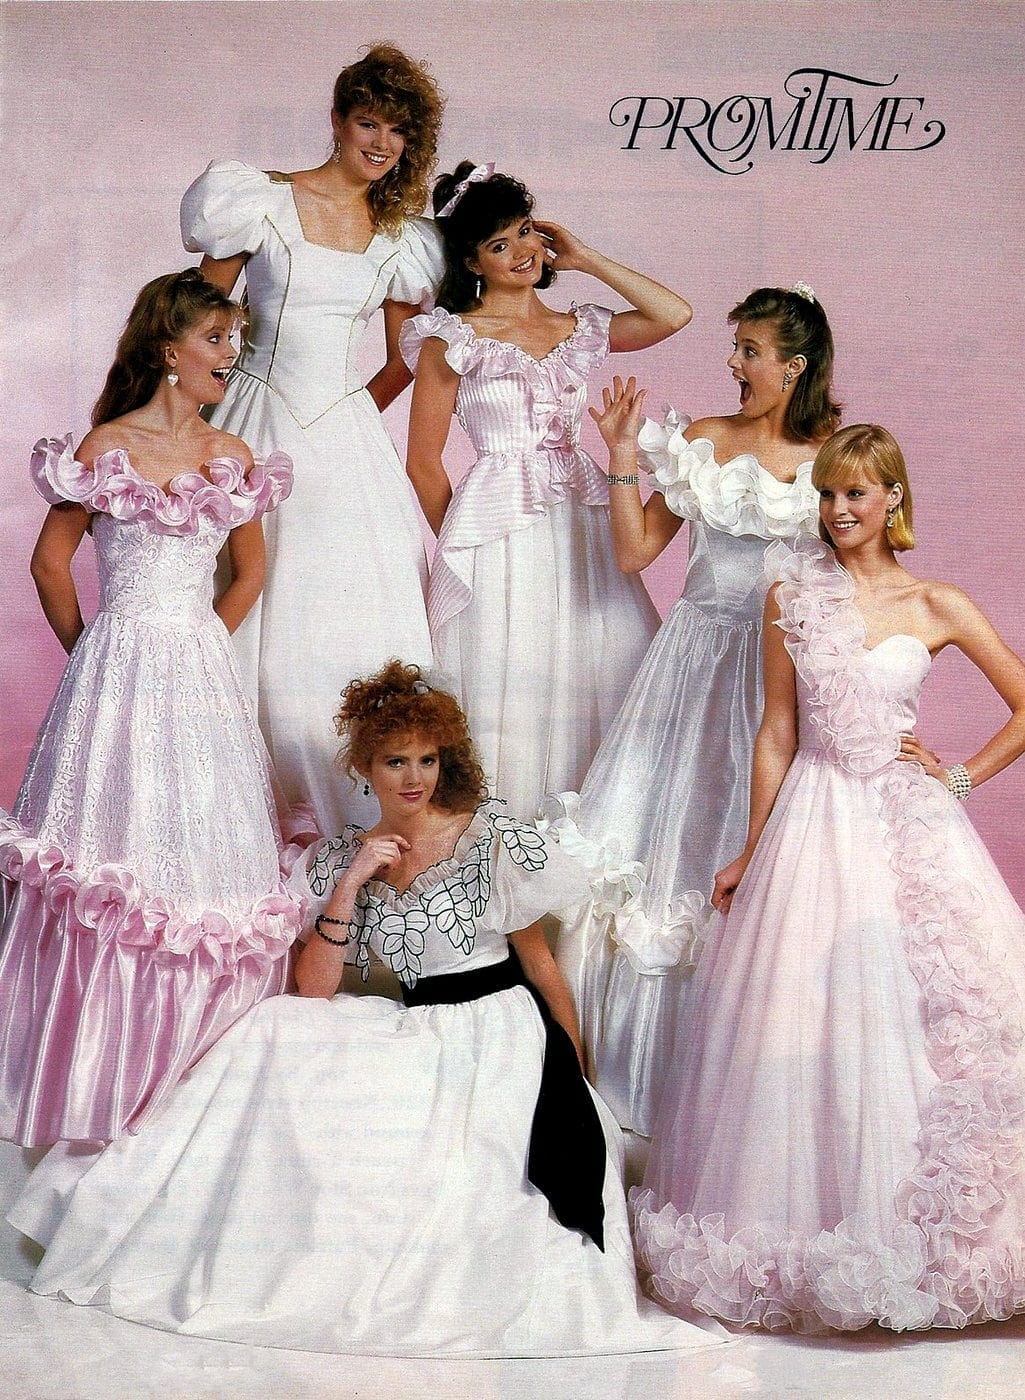 Vintage 80s prom dresses from Promtime